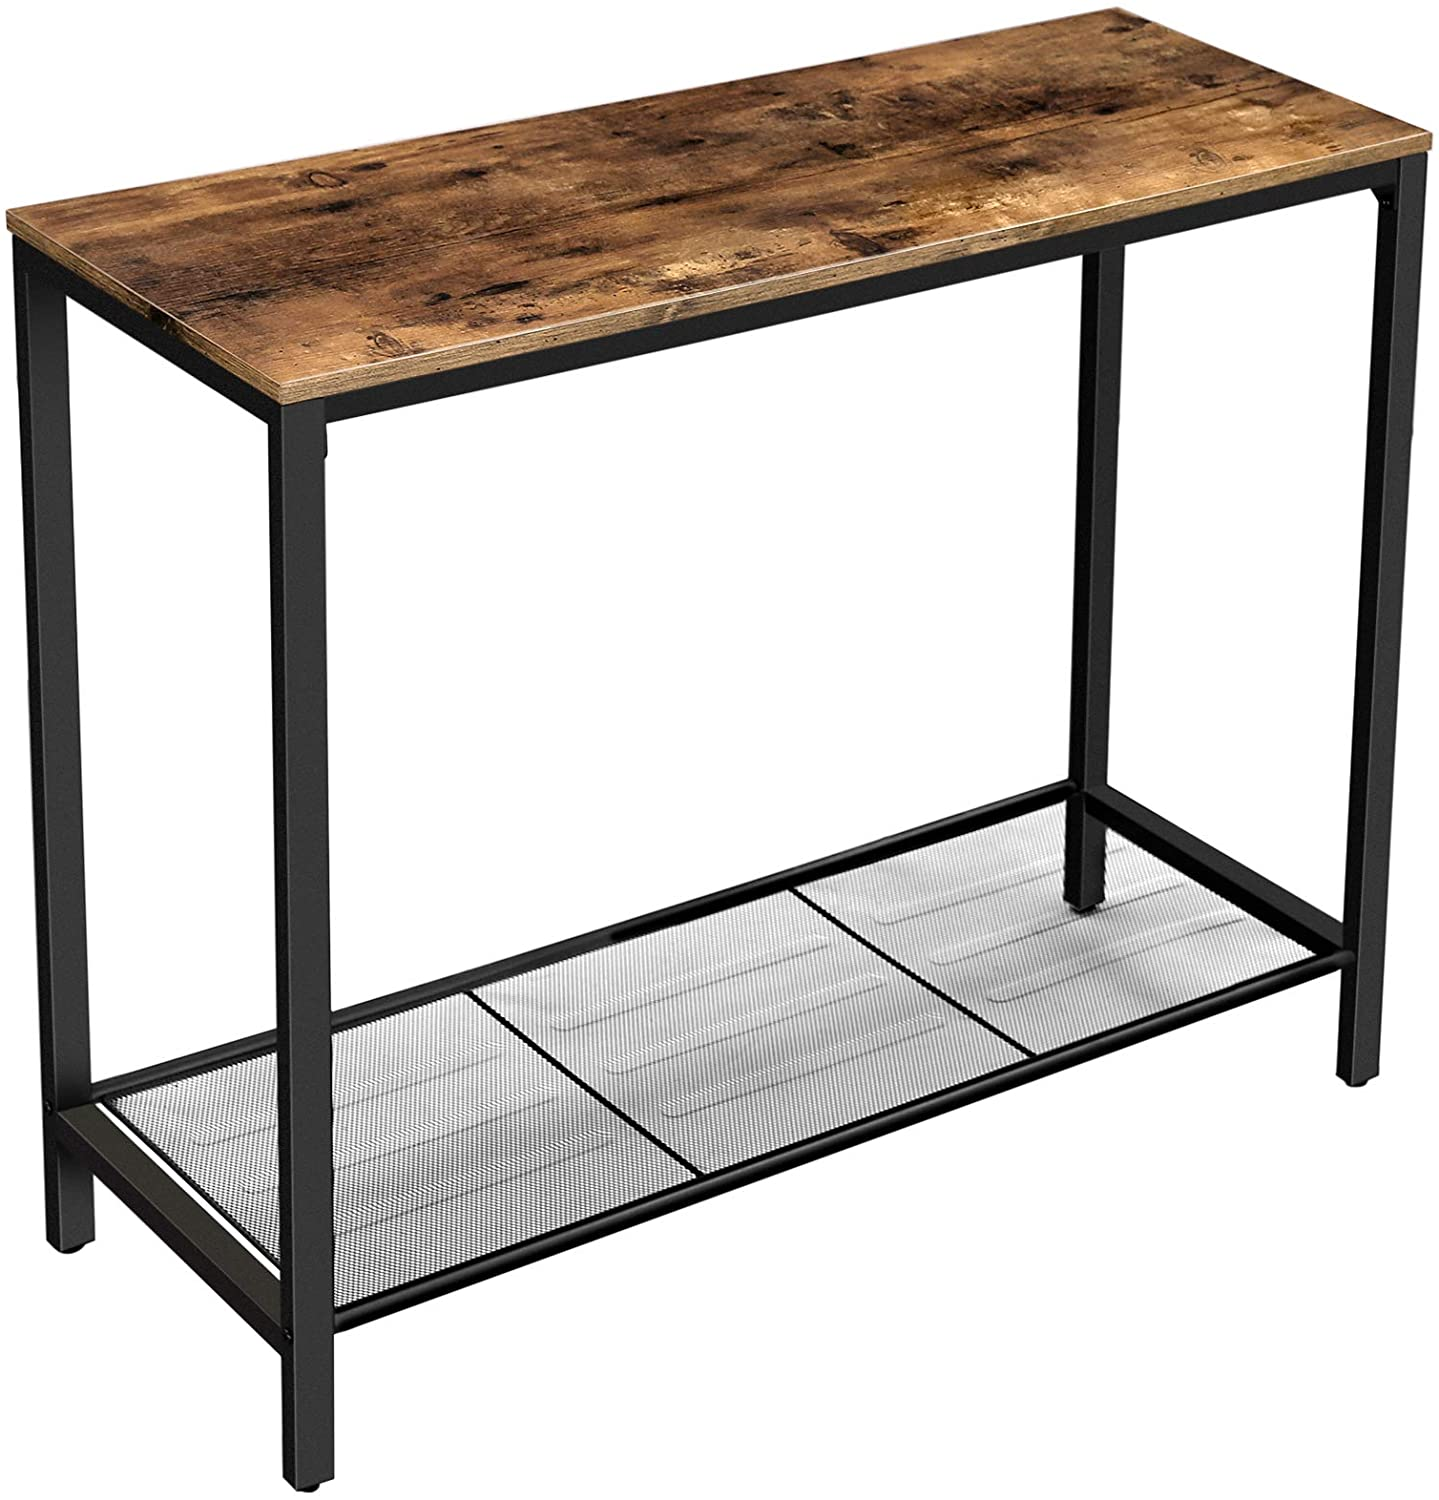 Enjoy fast, free nationwide shipping!  Family owned and operated, HawkinsWoodshop.com is your one stop shop for affordable furniture.  Shop HawkinsWoodshop.com for solid wood & metal modern, traditional, contemporary, industrial, custom, rustic, and farmhouse furniture including our Ryan Mesh Shelf Console Table.